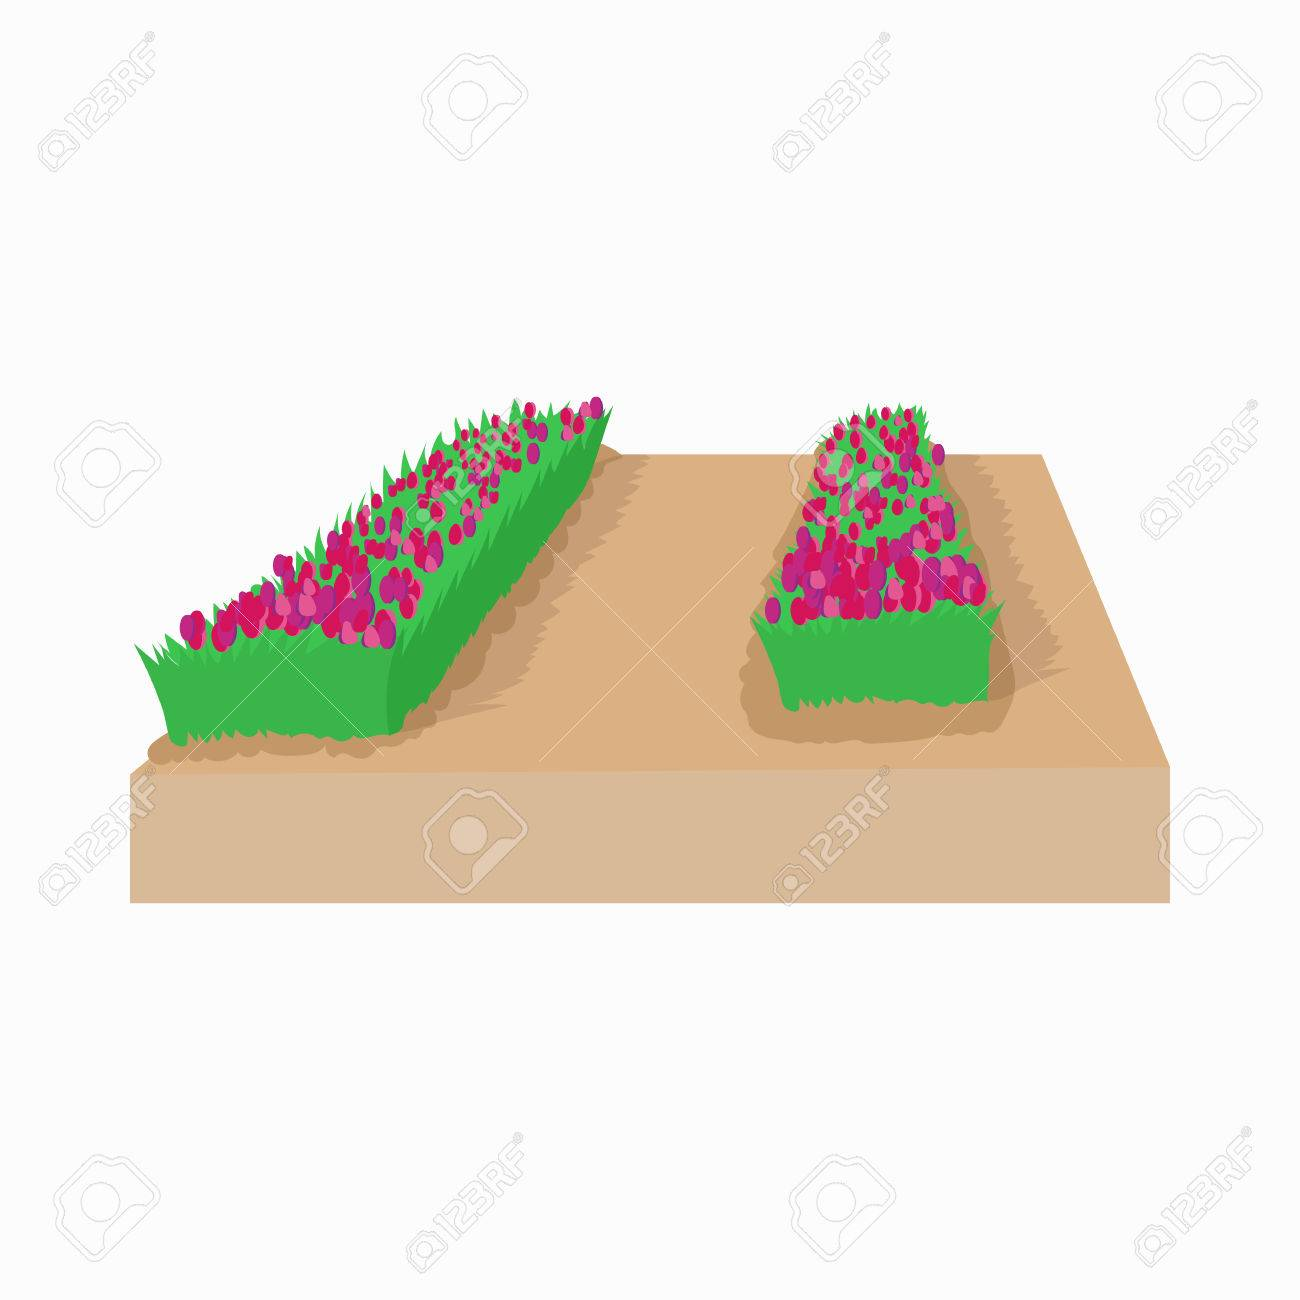 hight resolution of garden bed of tulips in holland icon in cartoon style on a white background stock vector